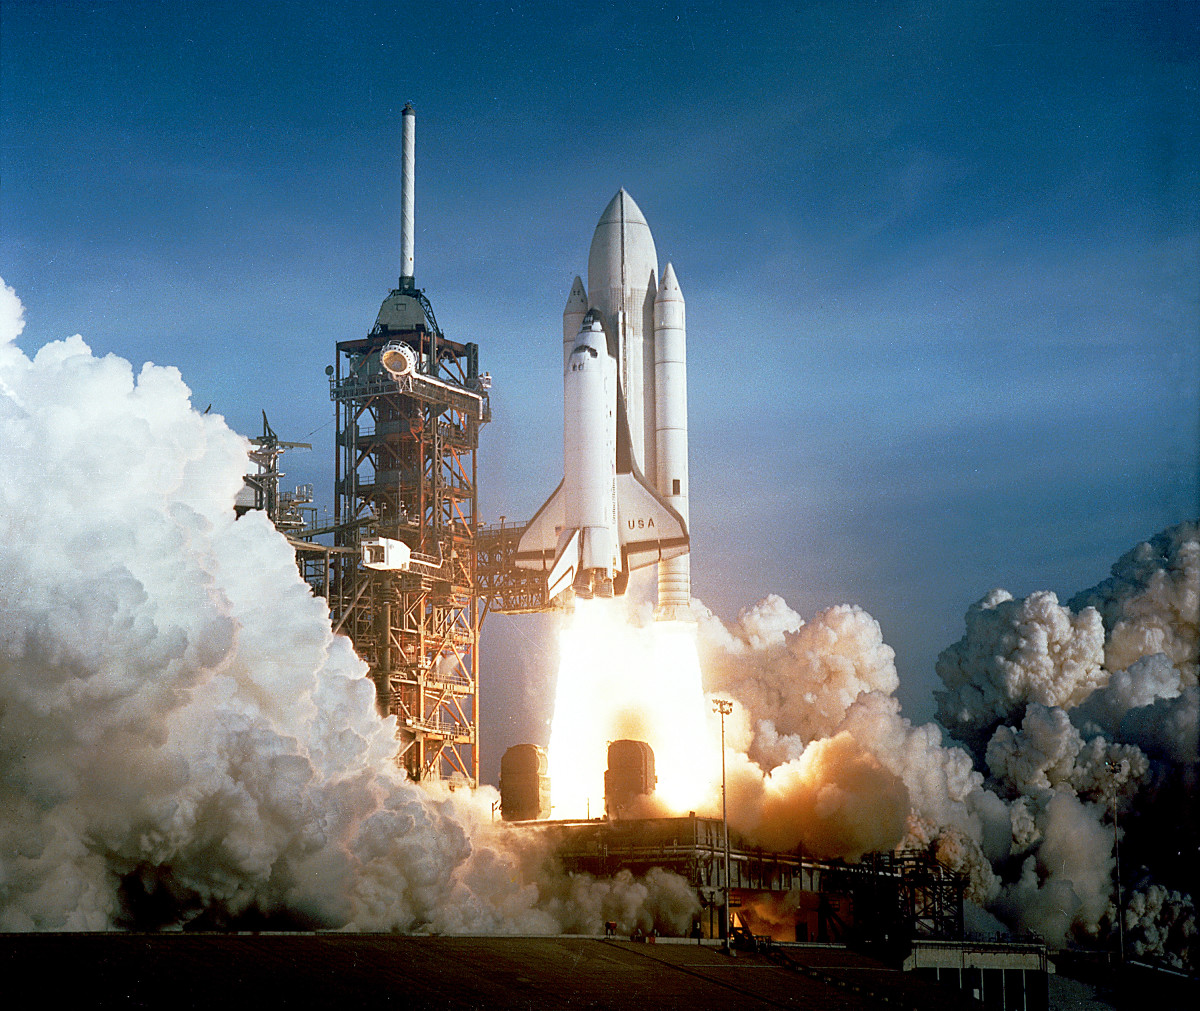 Columbia lifting off during STS-1, the first Space Shuttle flight